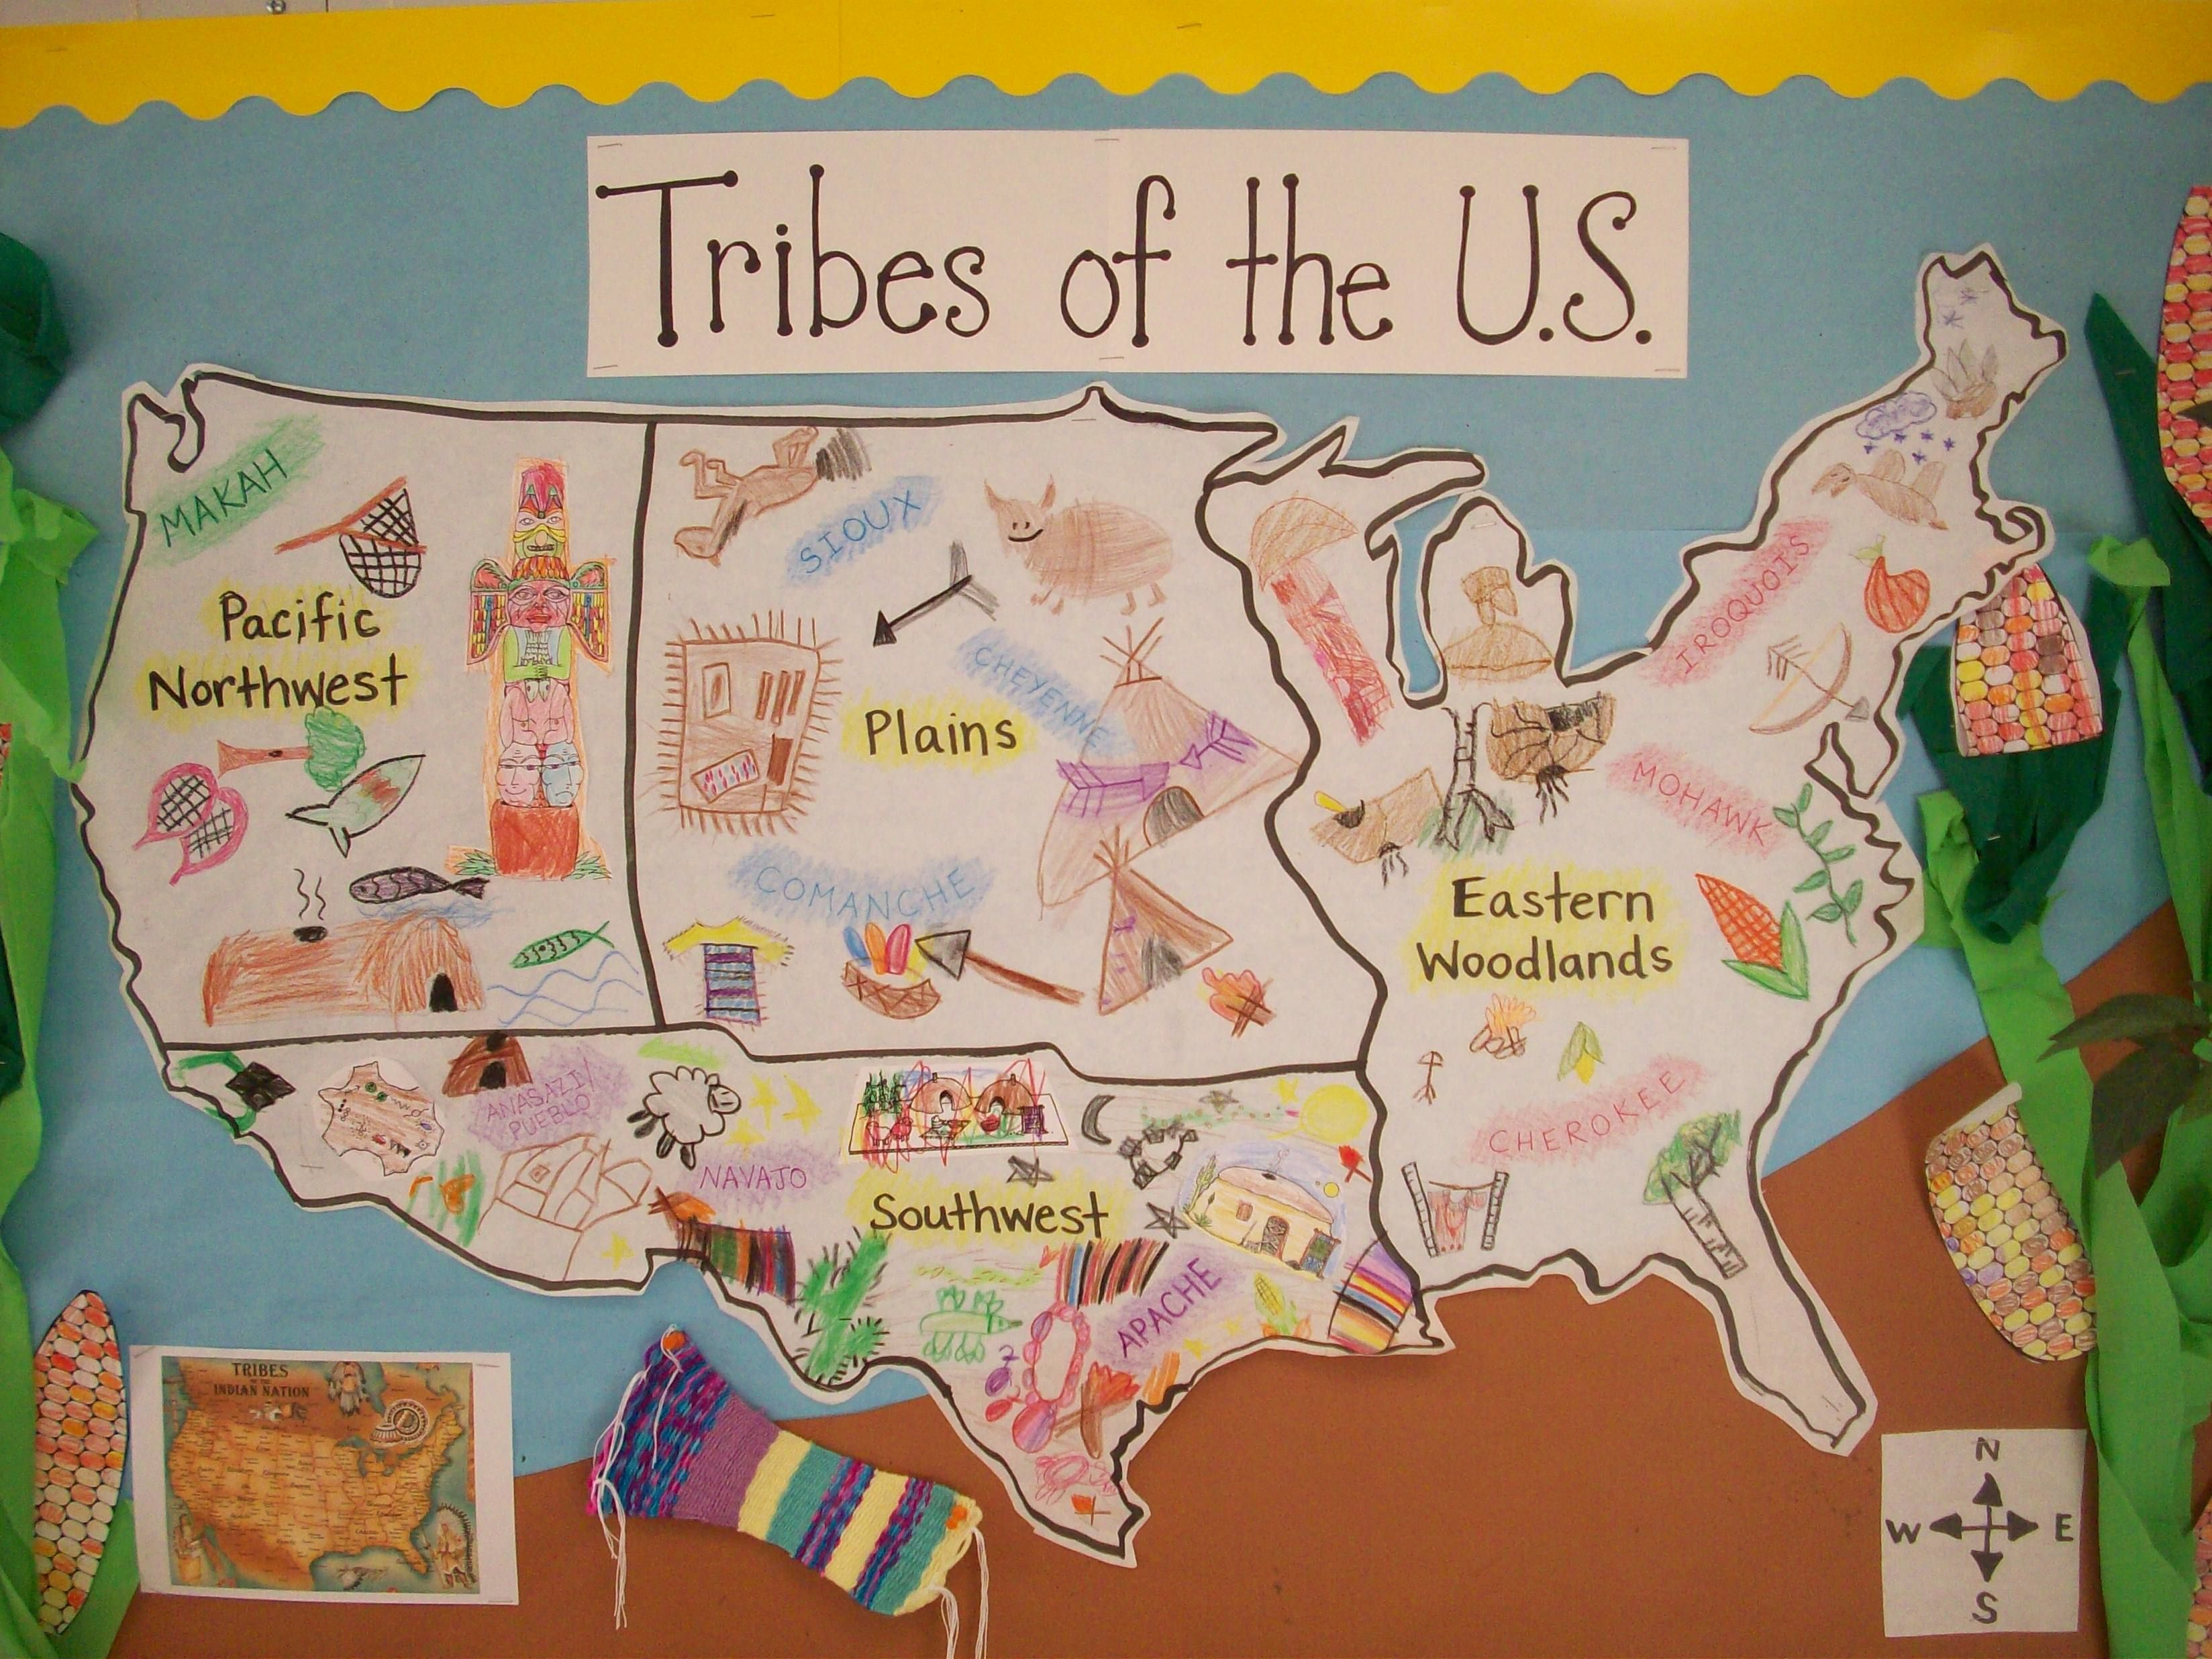 HD Decor Images » first native americans map   Google Search   Social Studies     first native americans map   Google Search